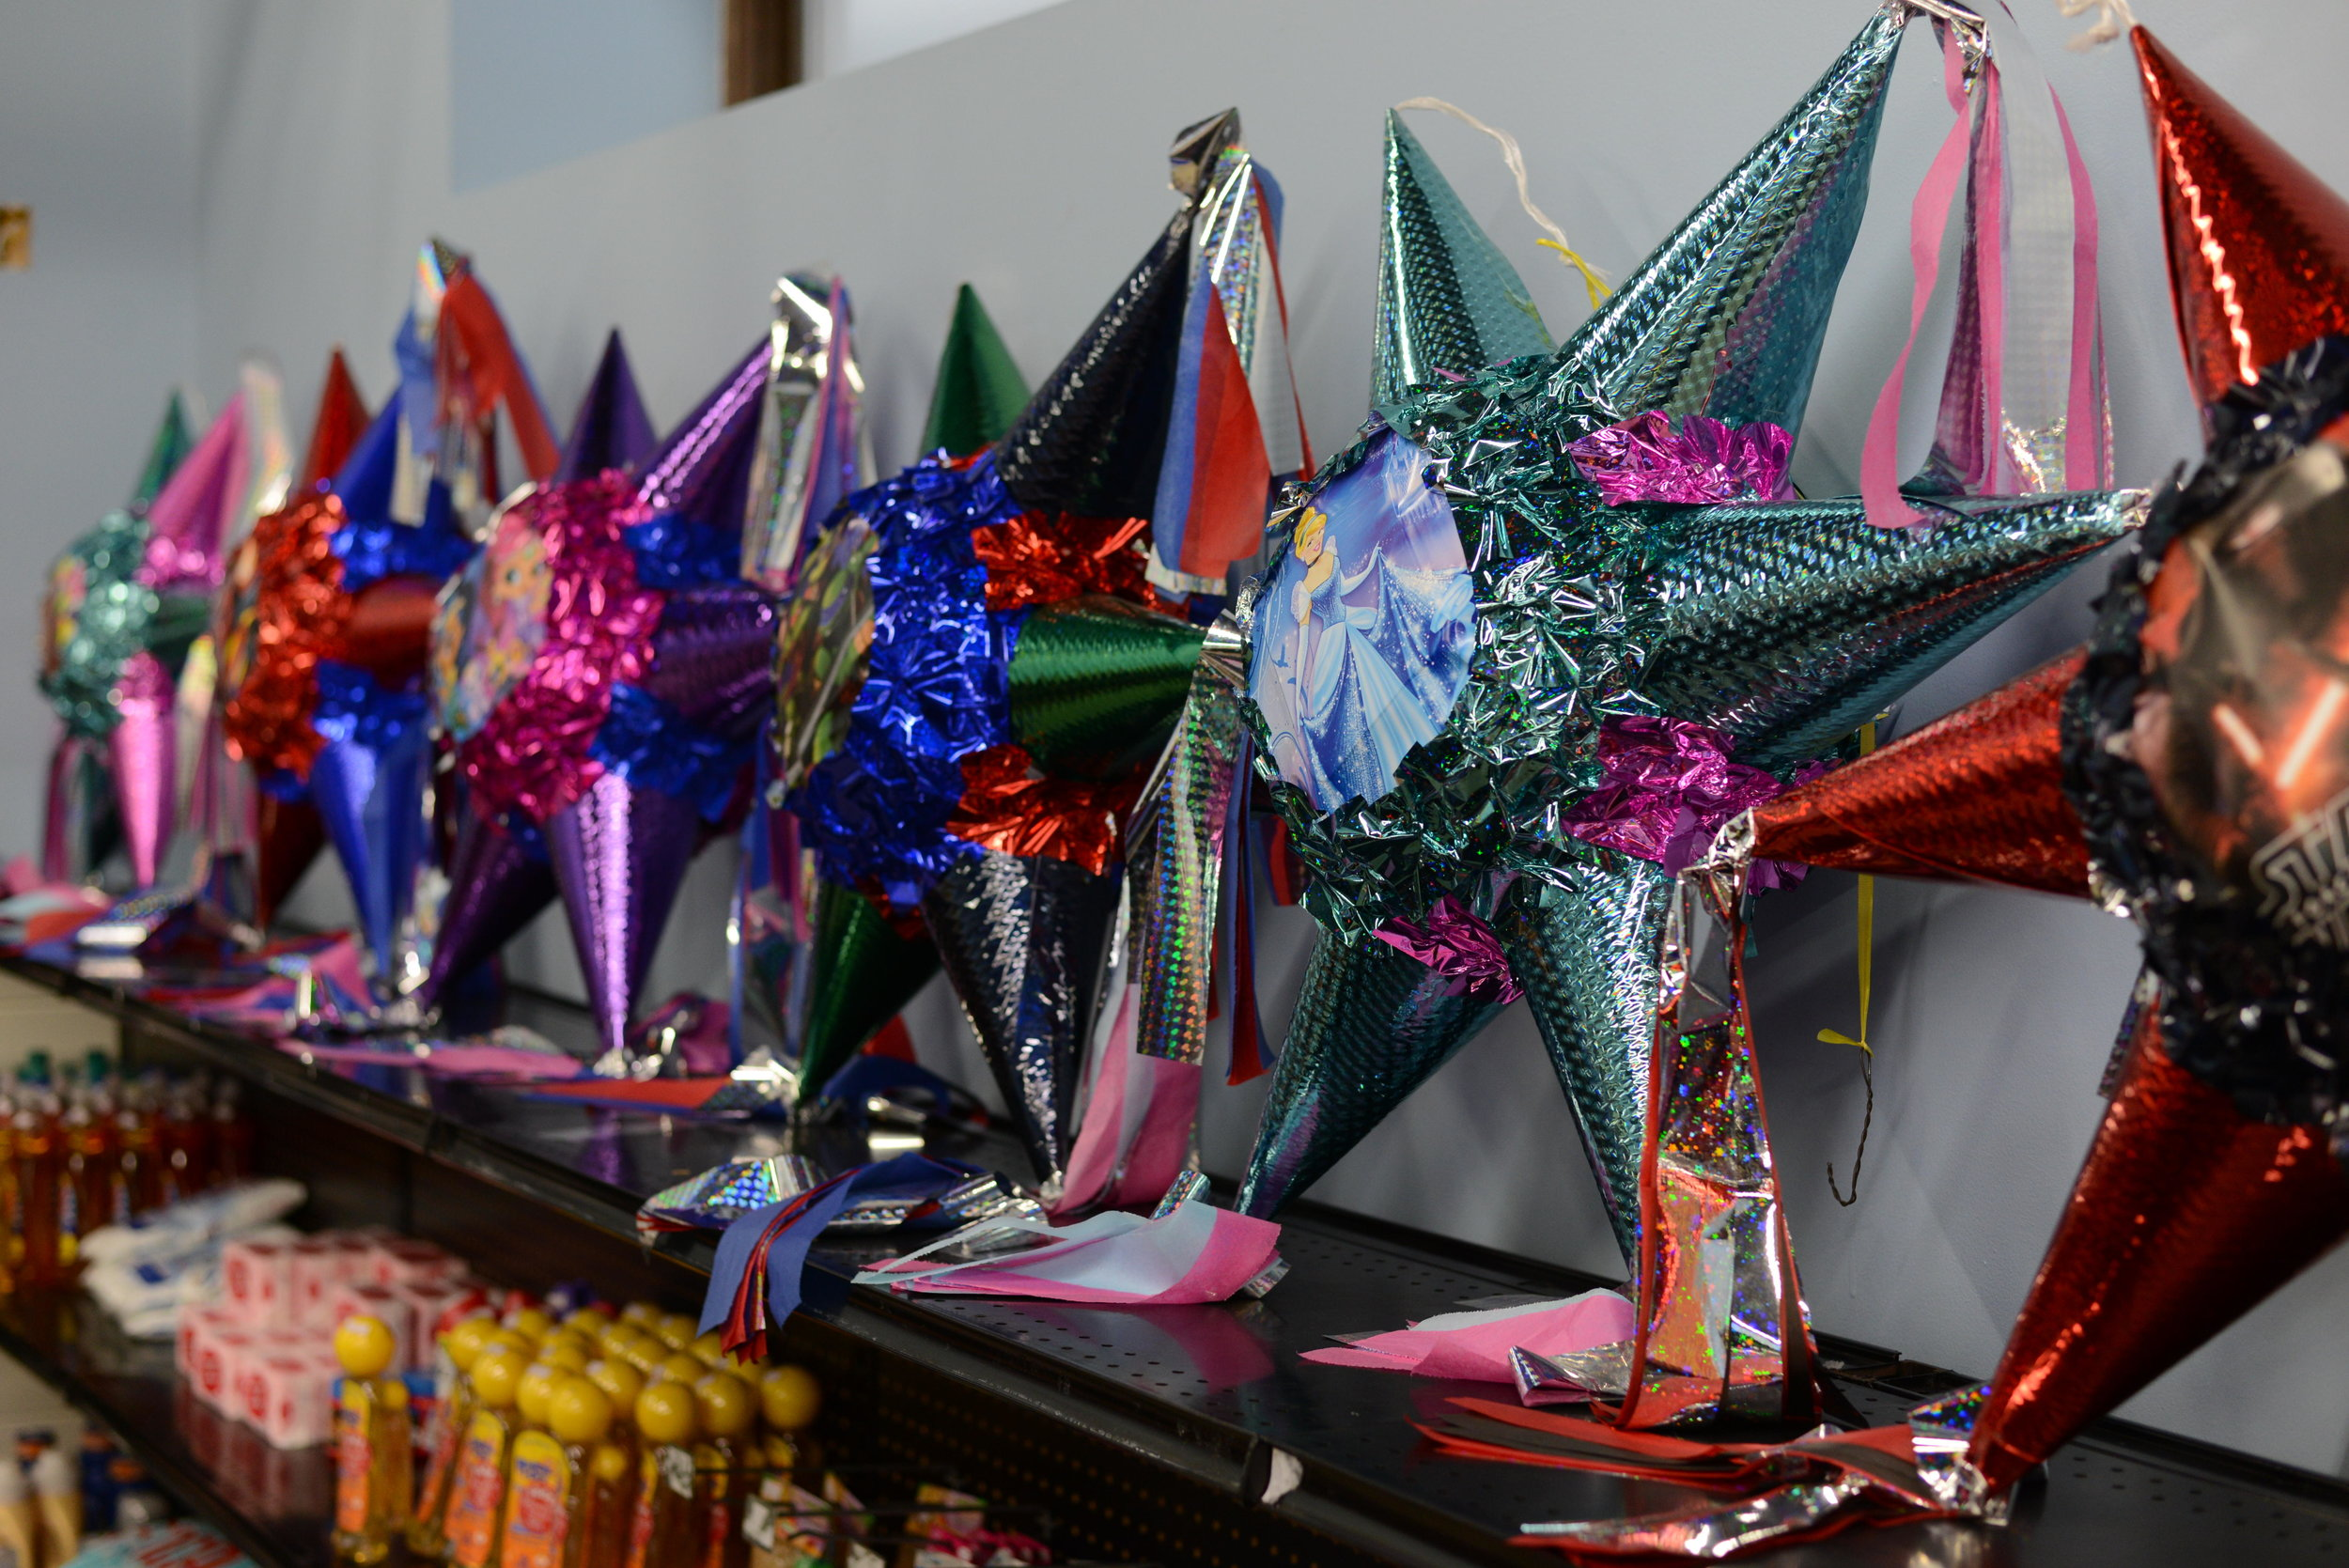 Lula's Tienda has everything from pinatas to dried peppers. Escareño is also looking forward to stocking more turtle merchandise to appeal to the summer crowds. (Carter Jones/ FOCUS)